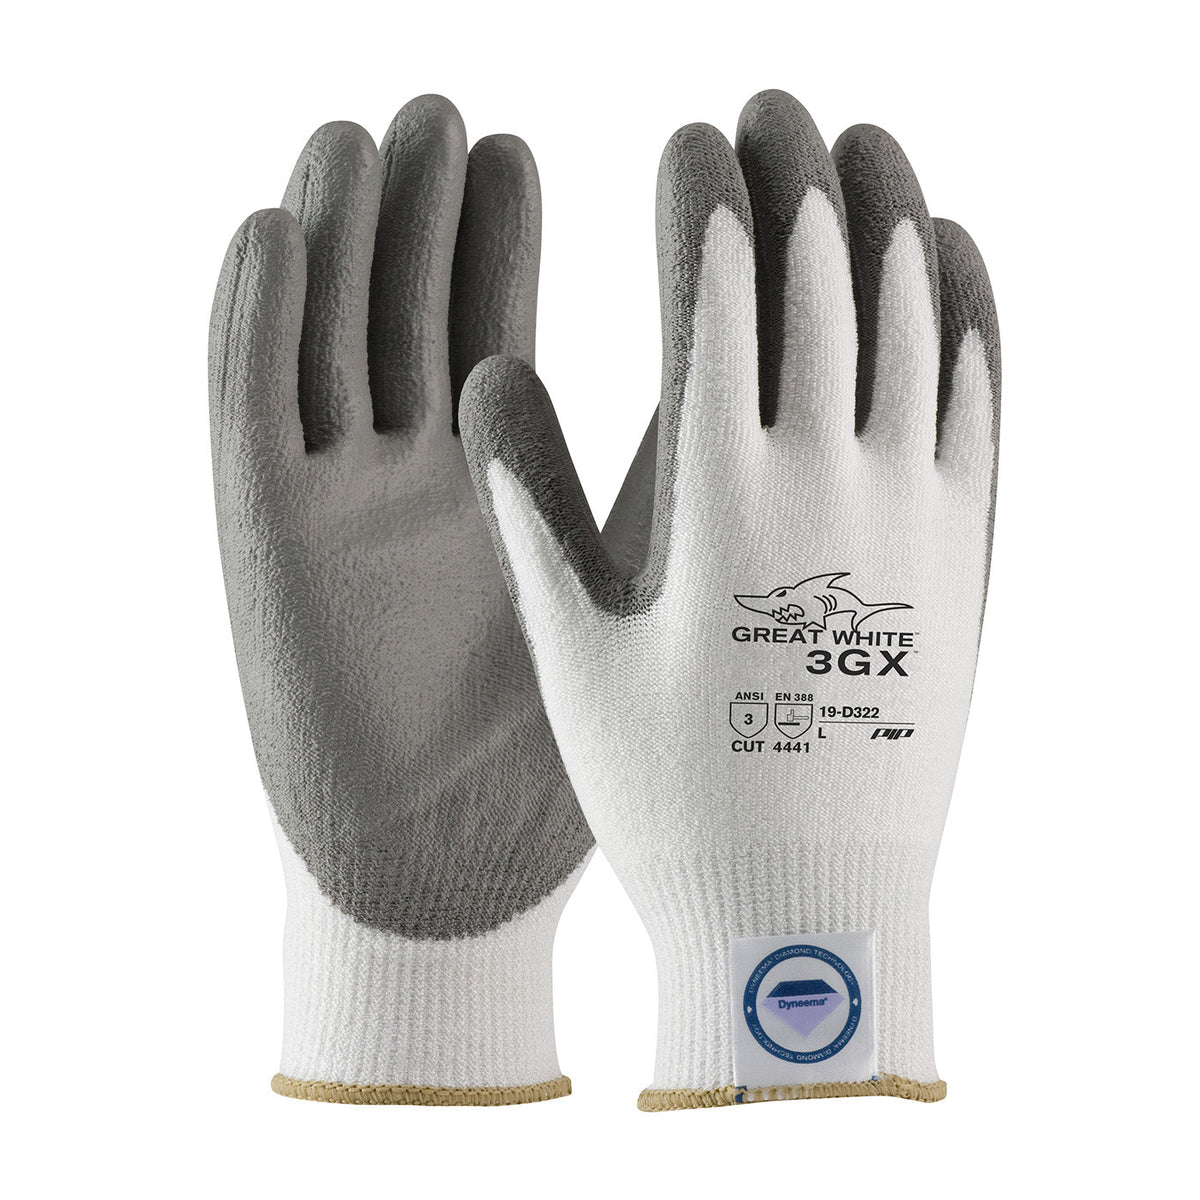 10 Pairs Dyneema Cut resistant Level 4 Safety Work Gloves